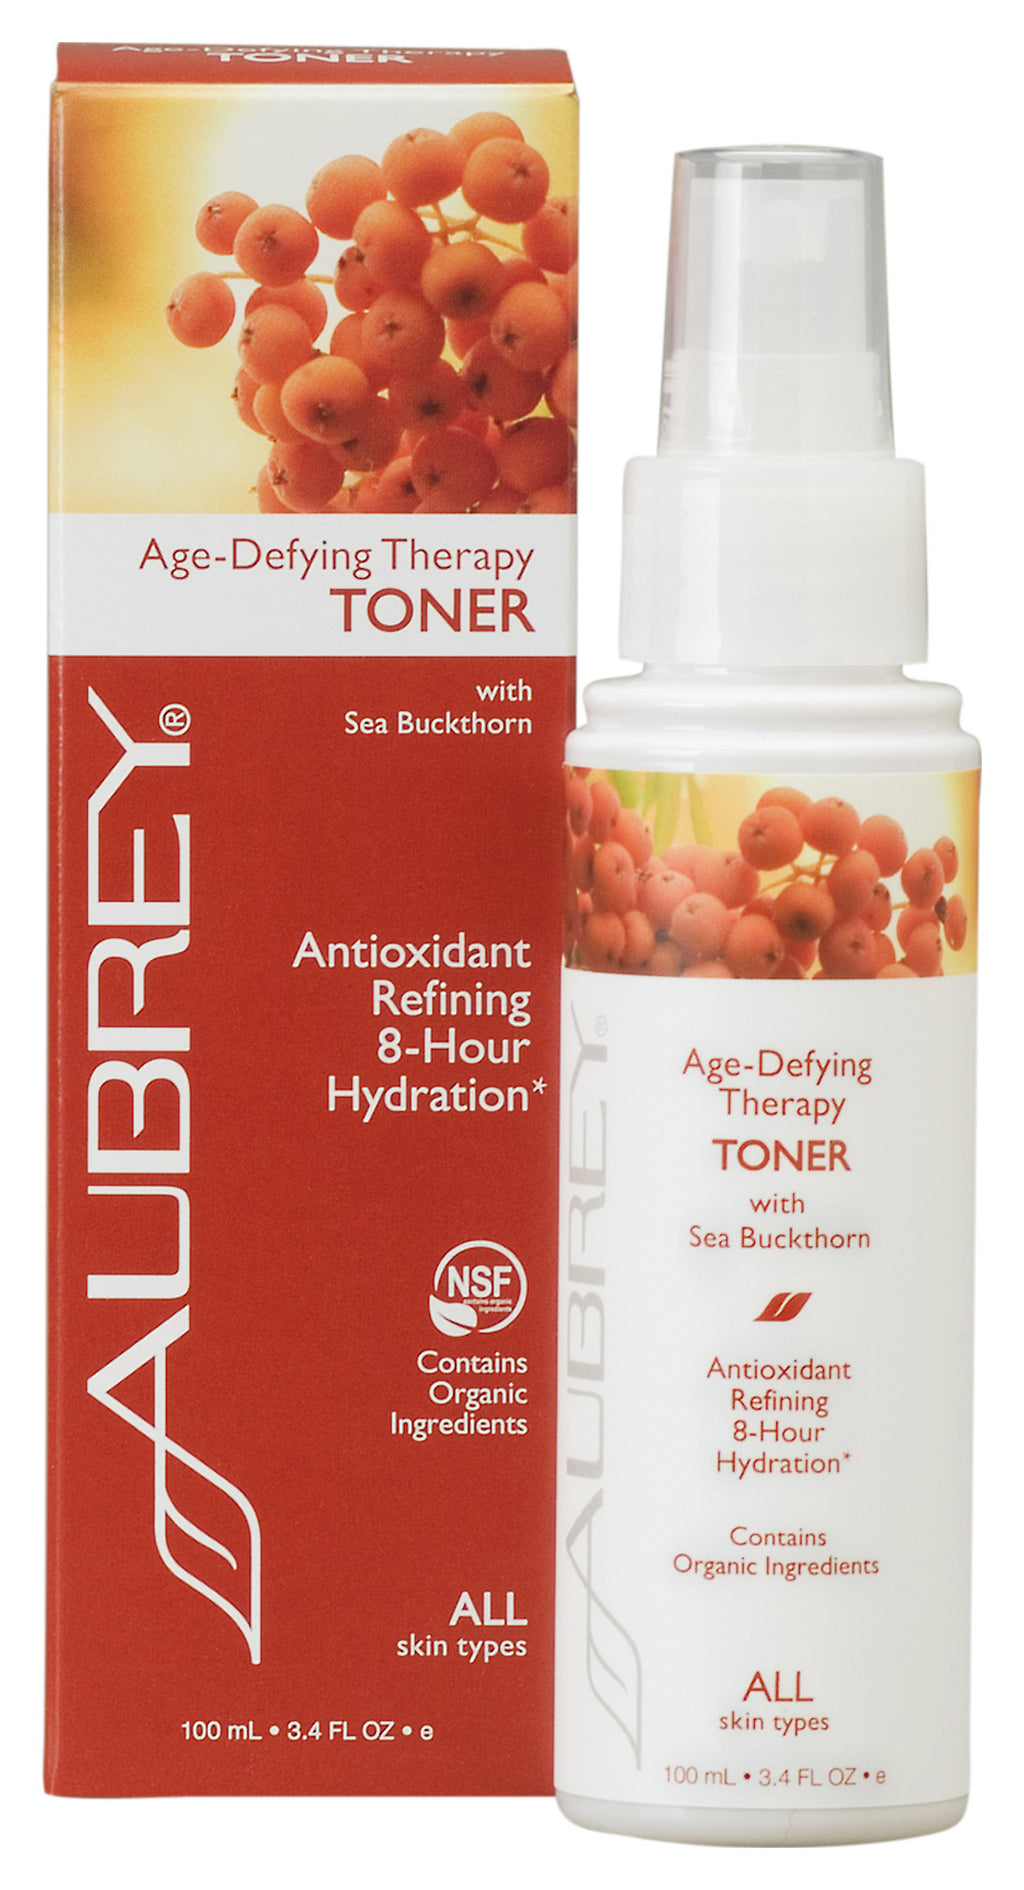 Aubrey® Age-Defying Therapy Toner